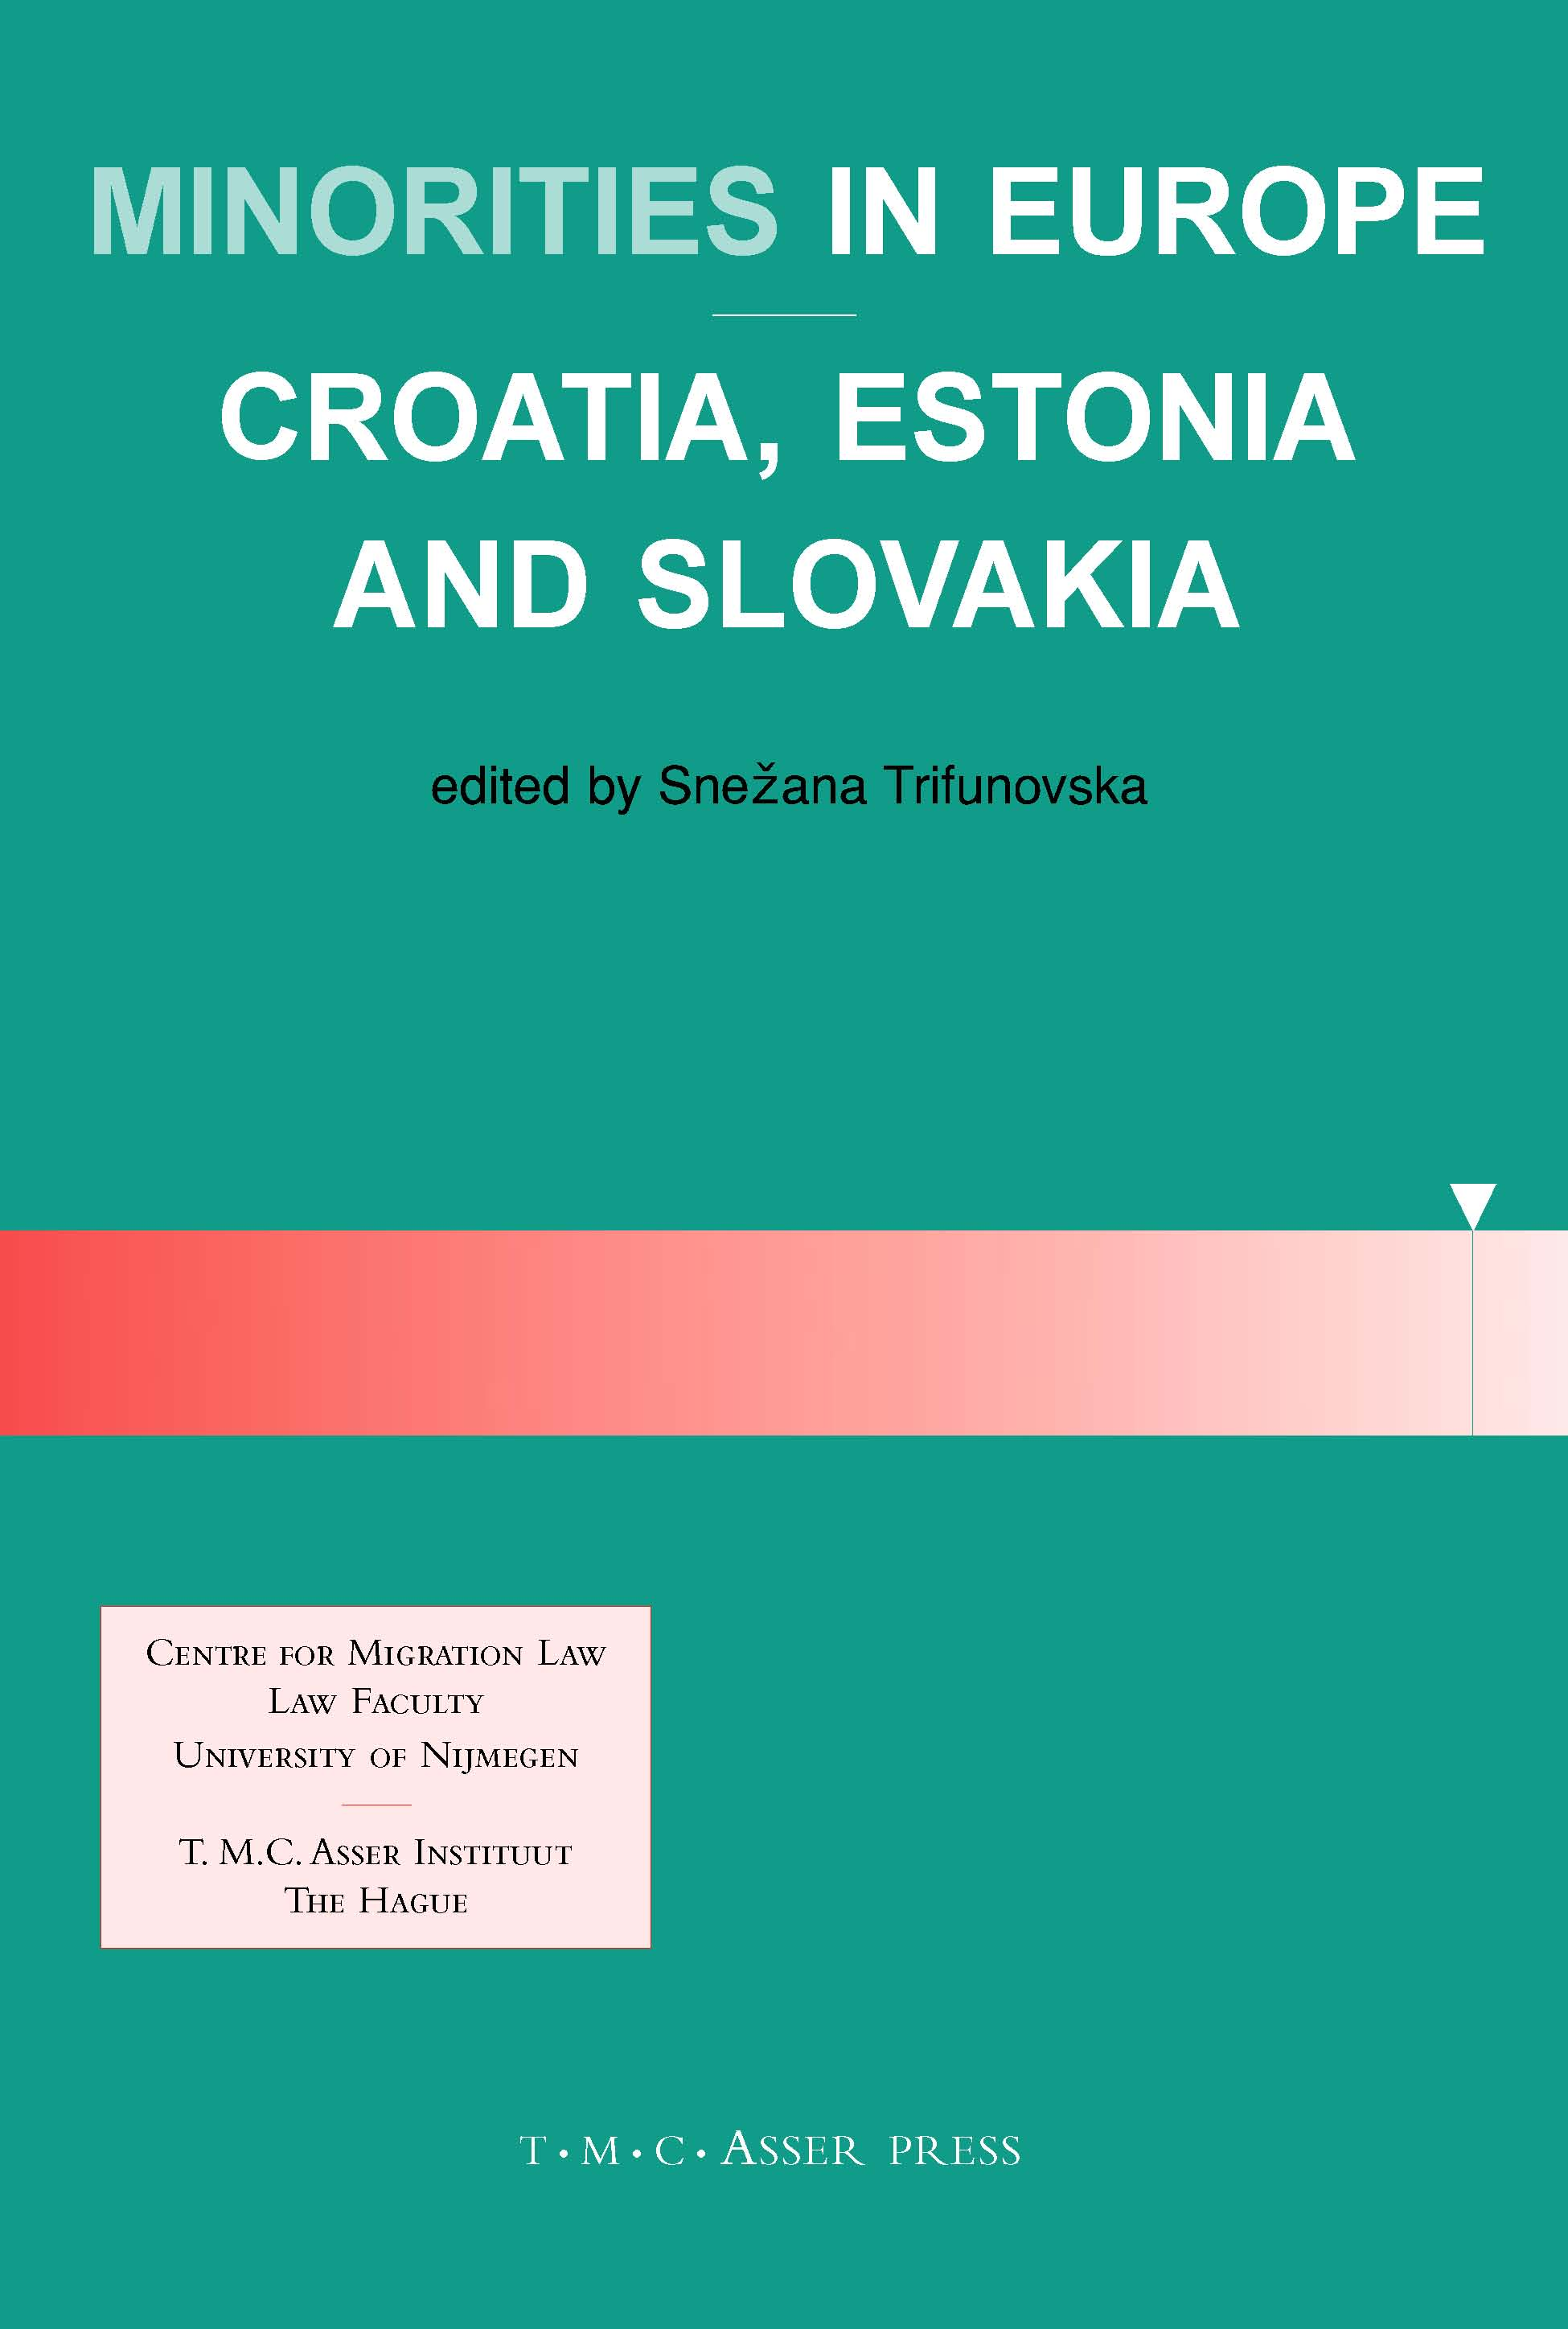 Minorities in Europe - Croatia, Estonia and Slovakia